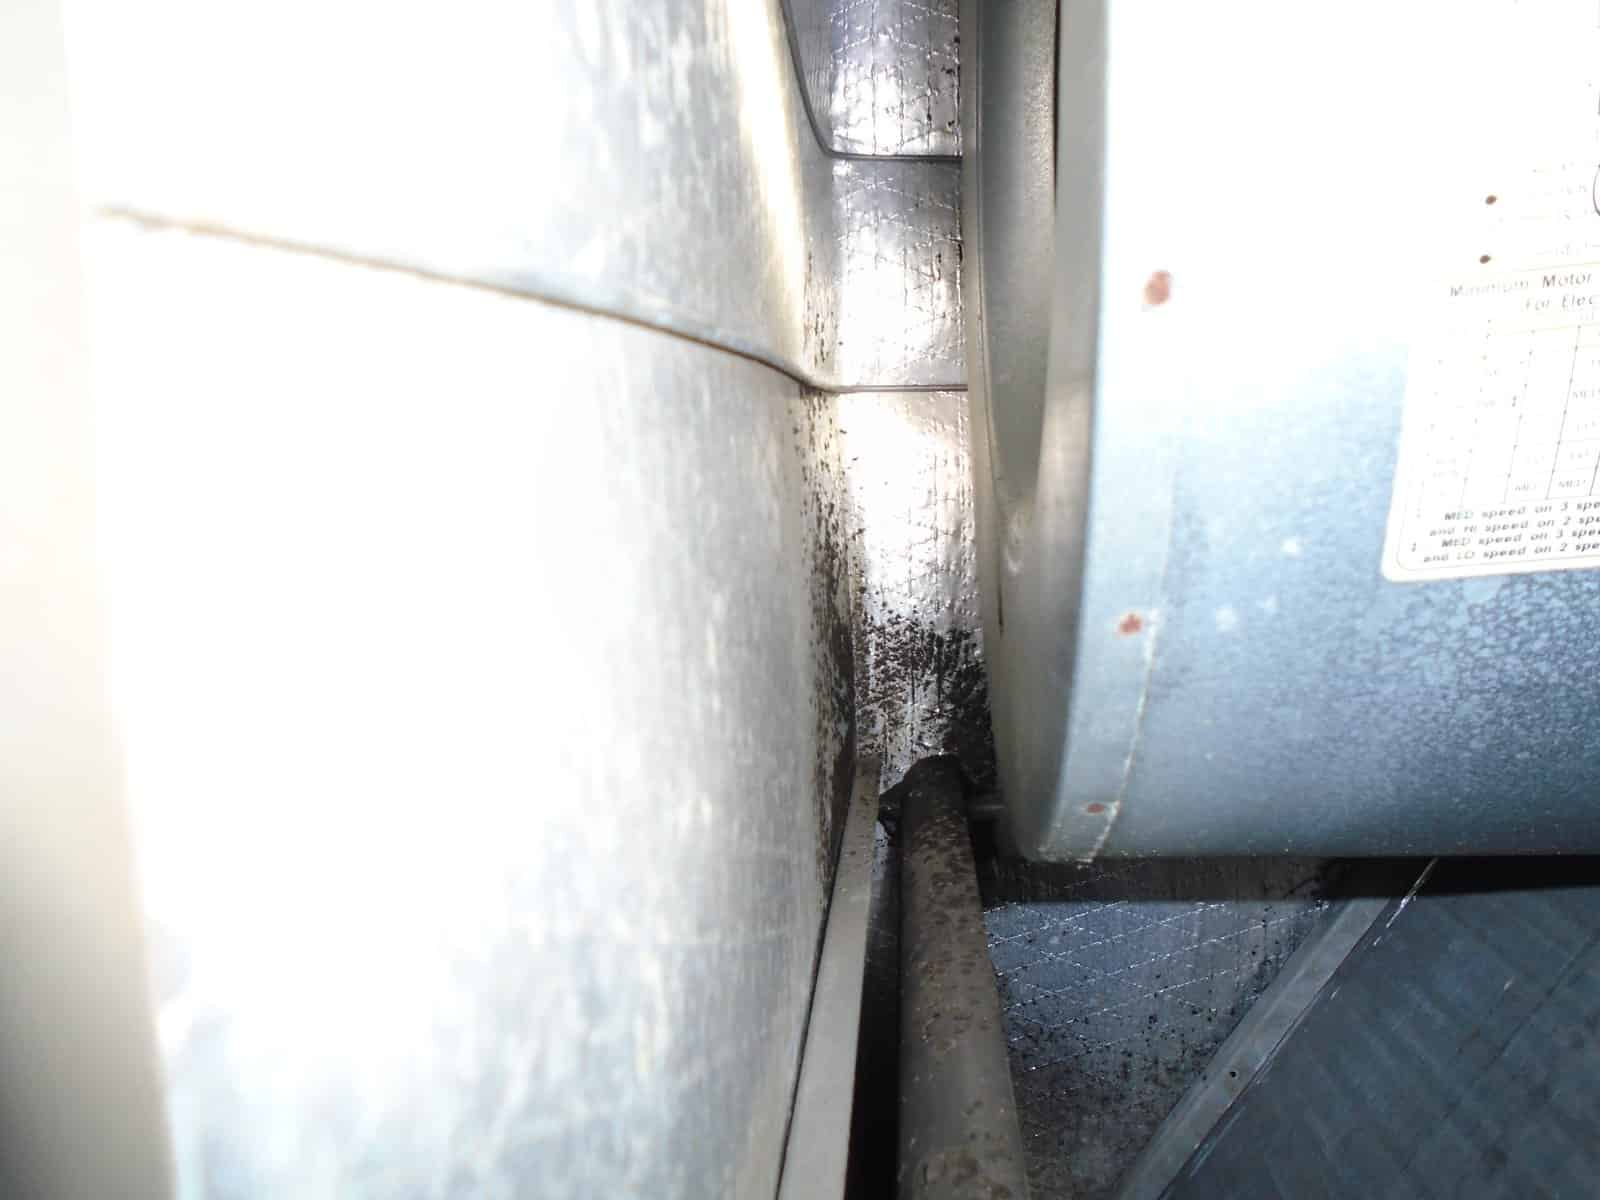 picture of mold in air duct